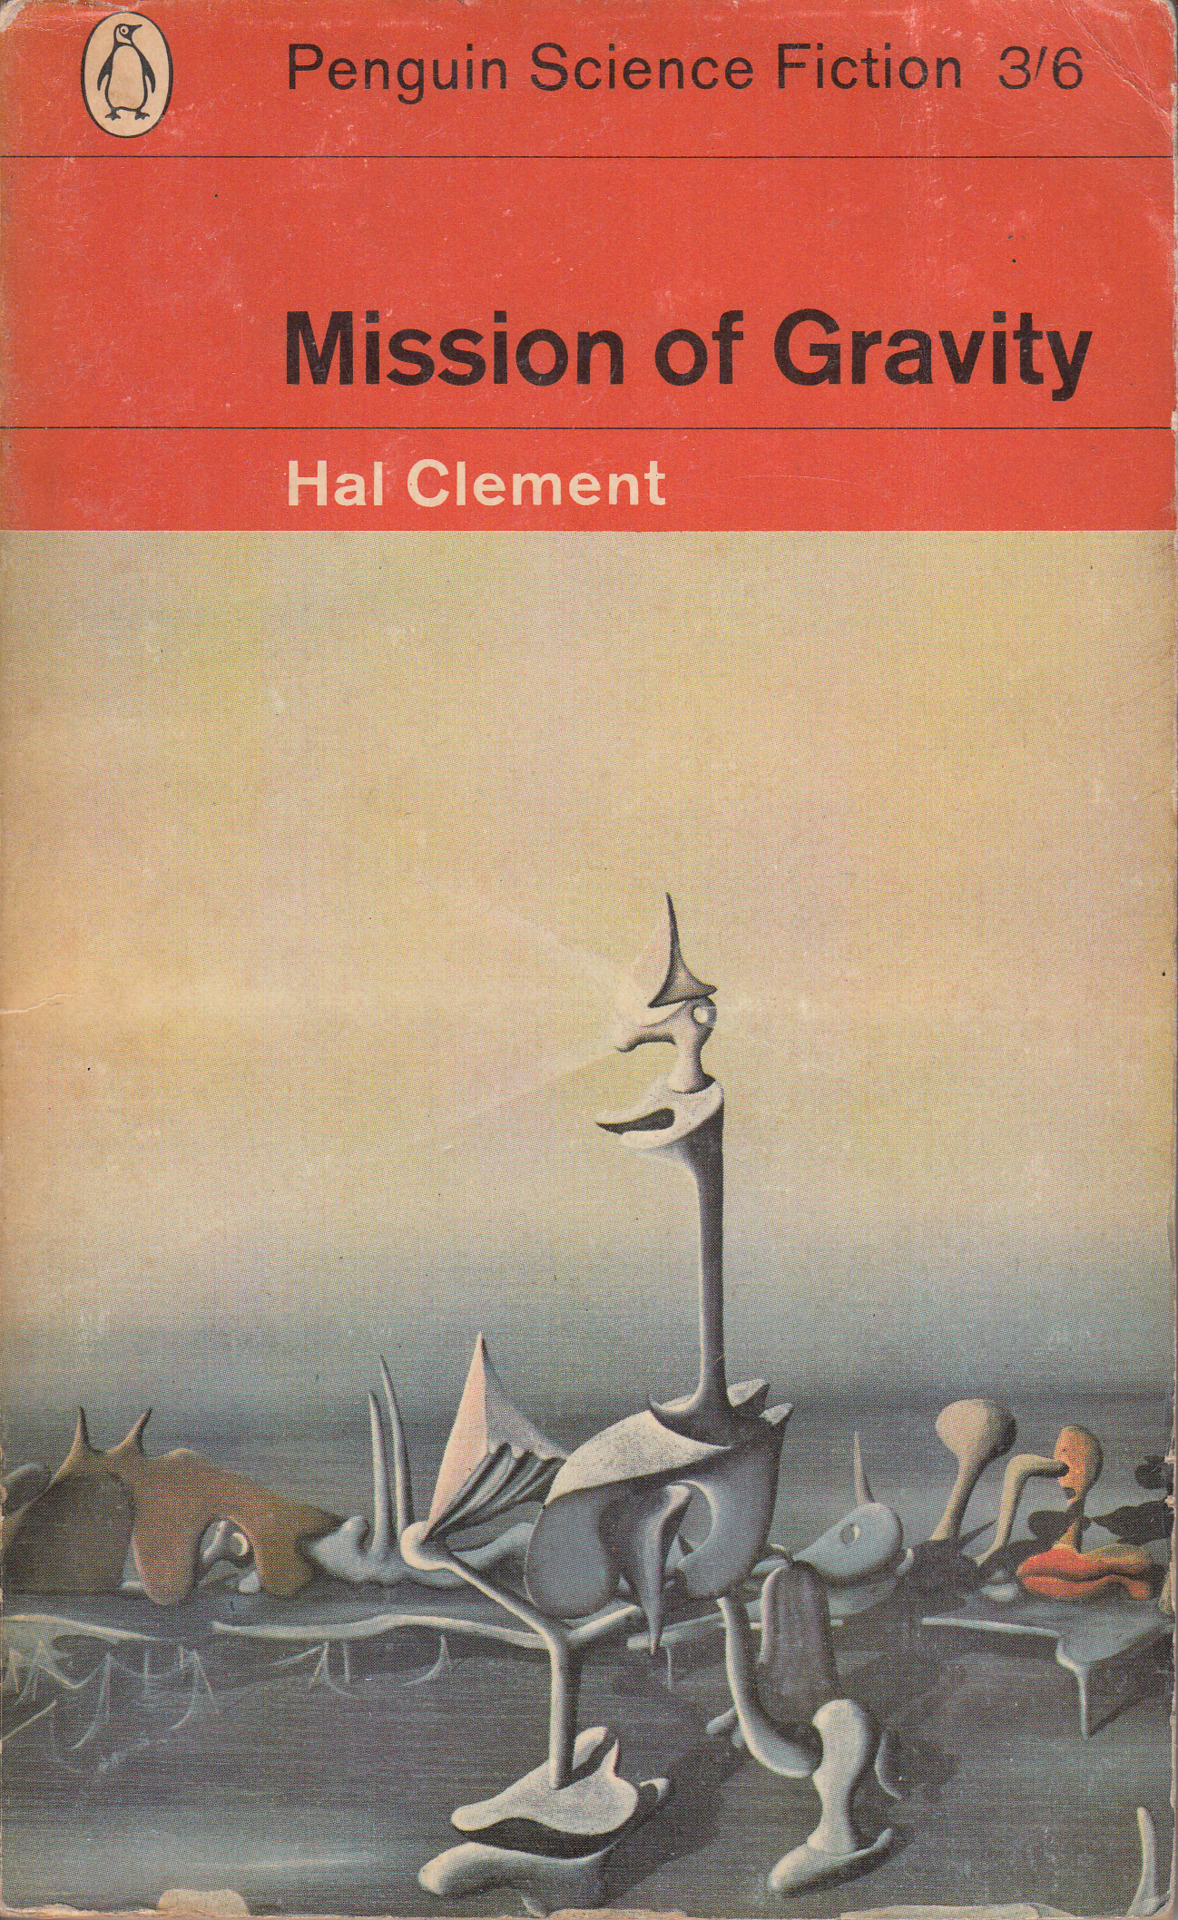 Classic, minimalist, vintage scifi. Gorgeous art. Dali in space!